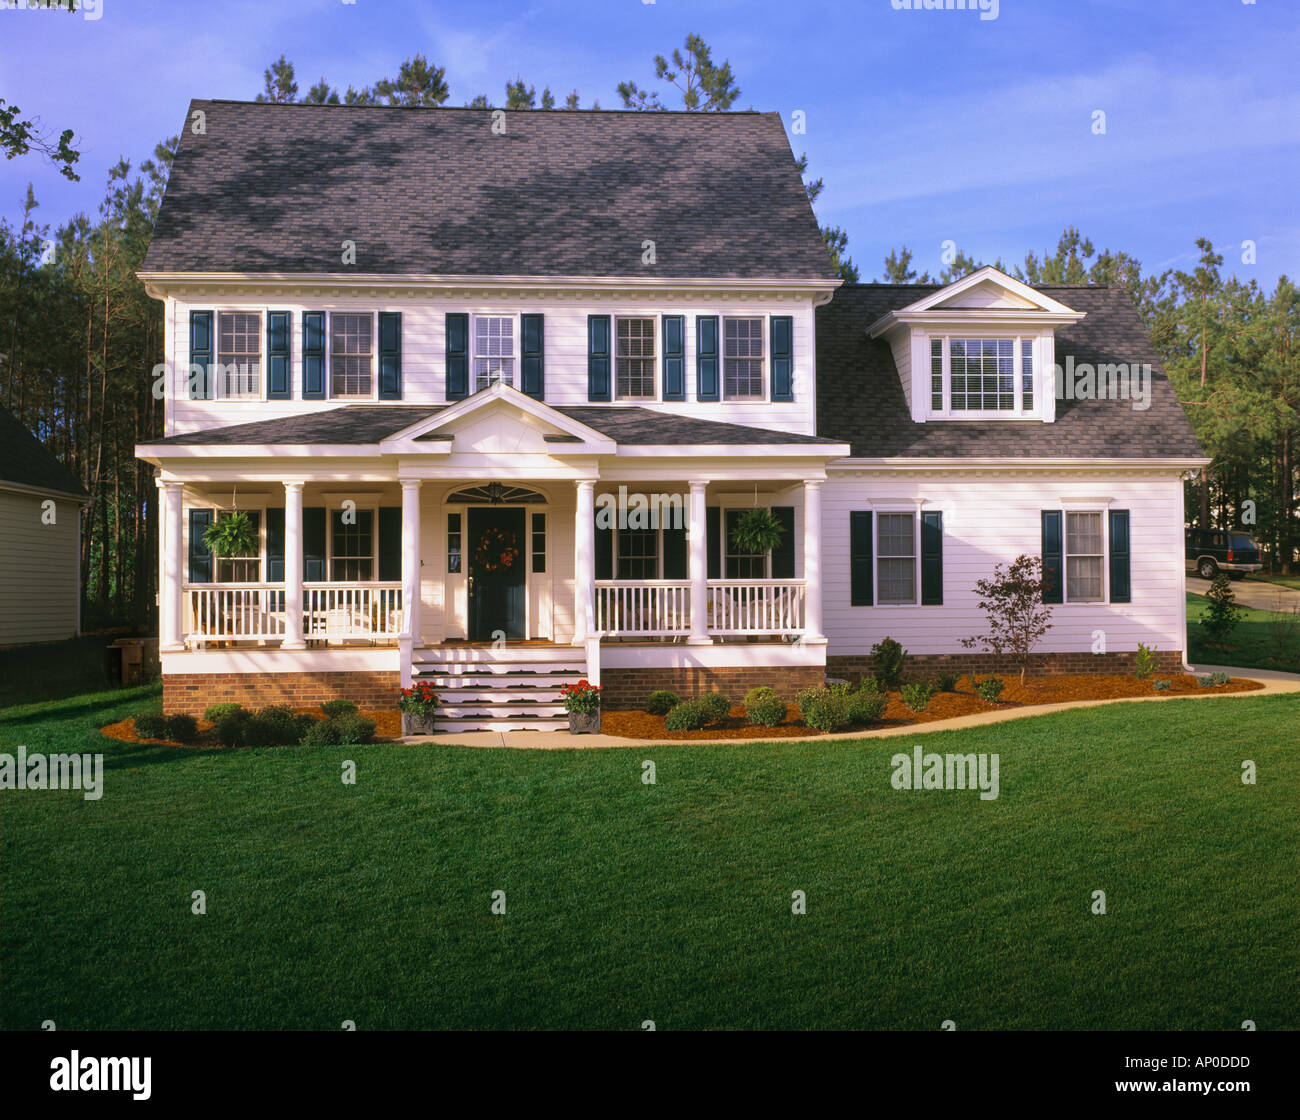 Large White Two Story House With Blue Shutters A Front